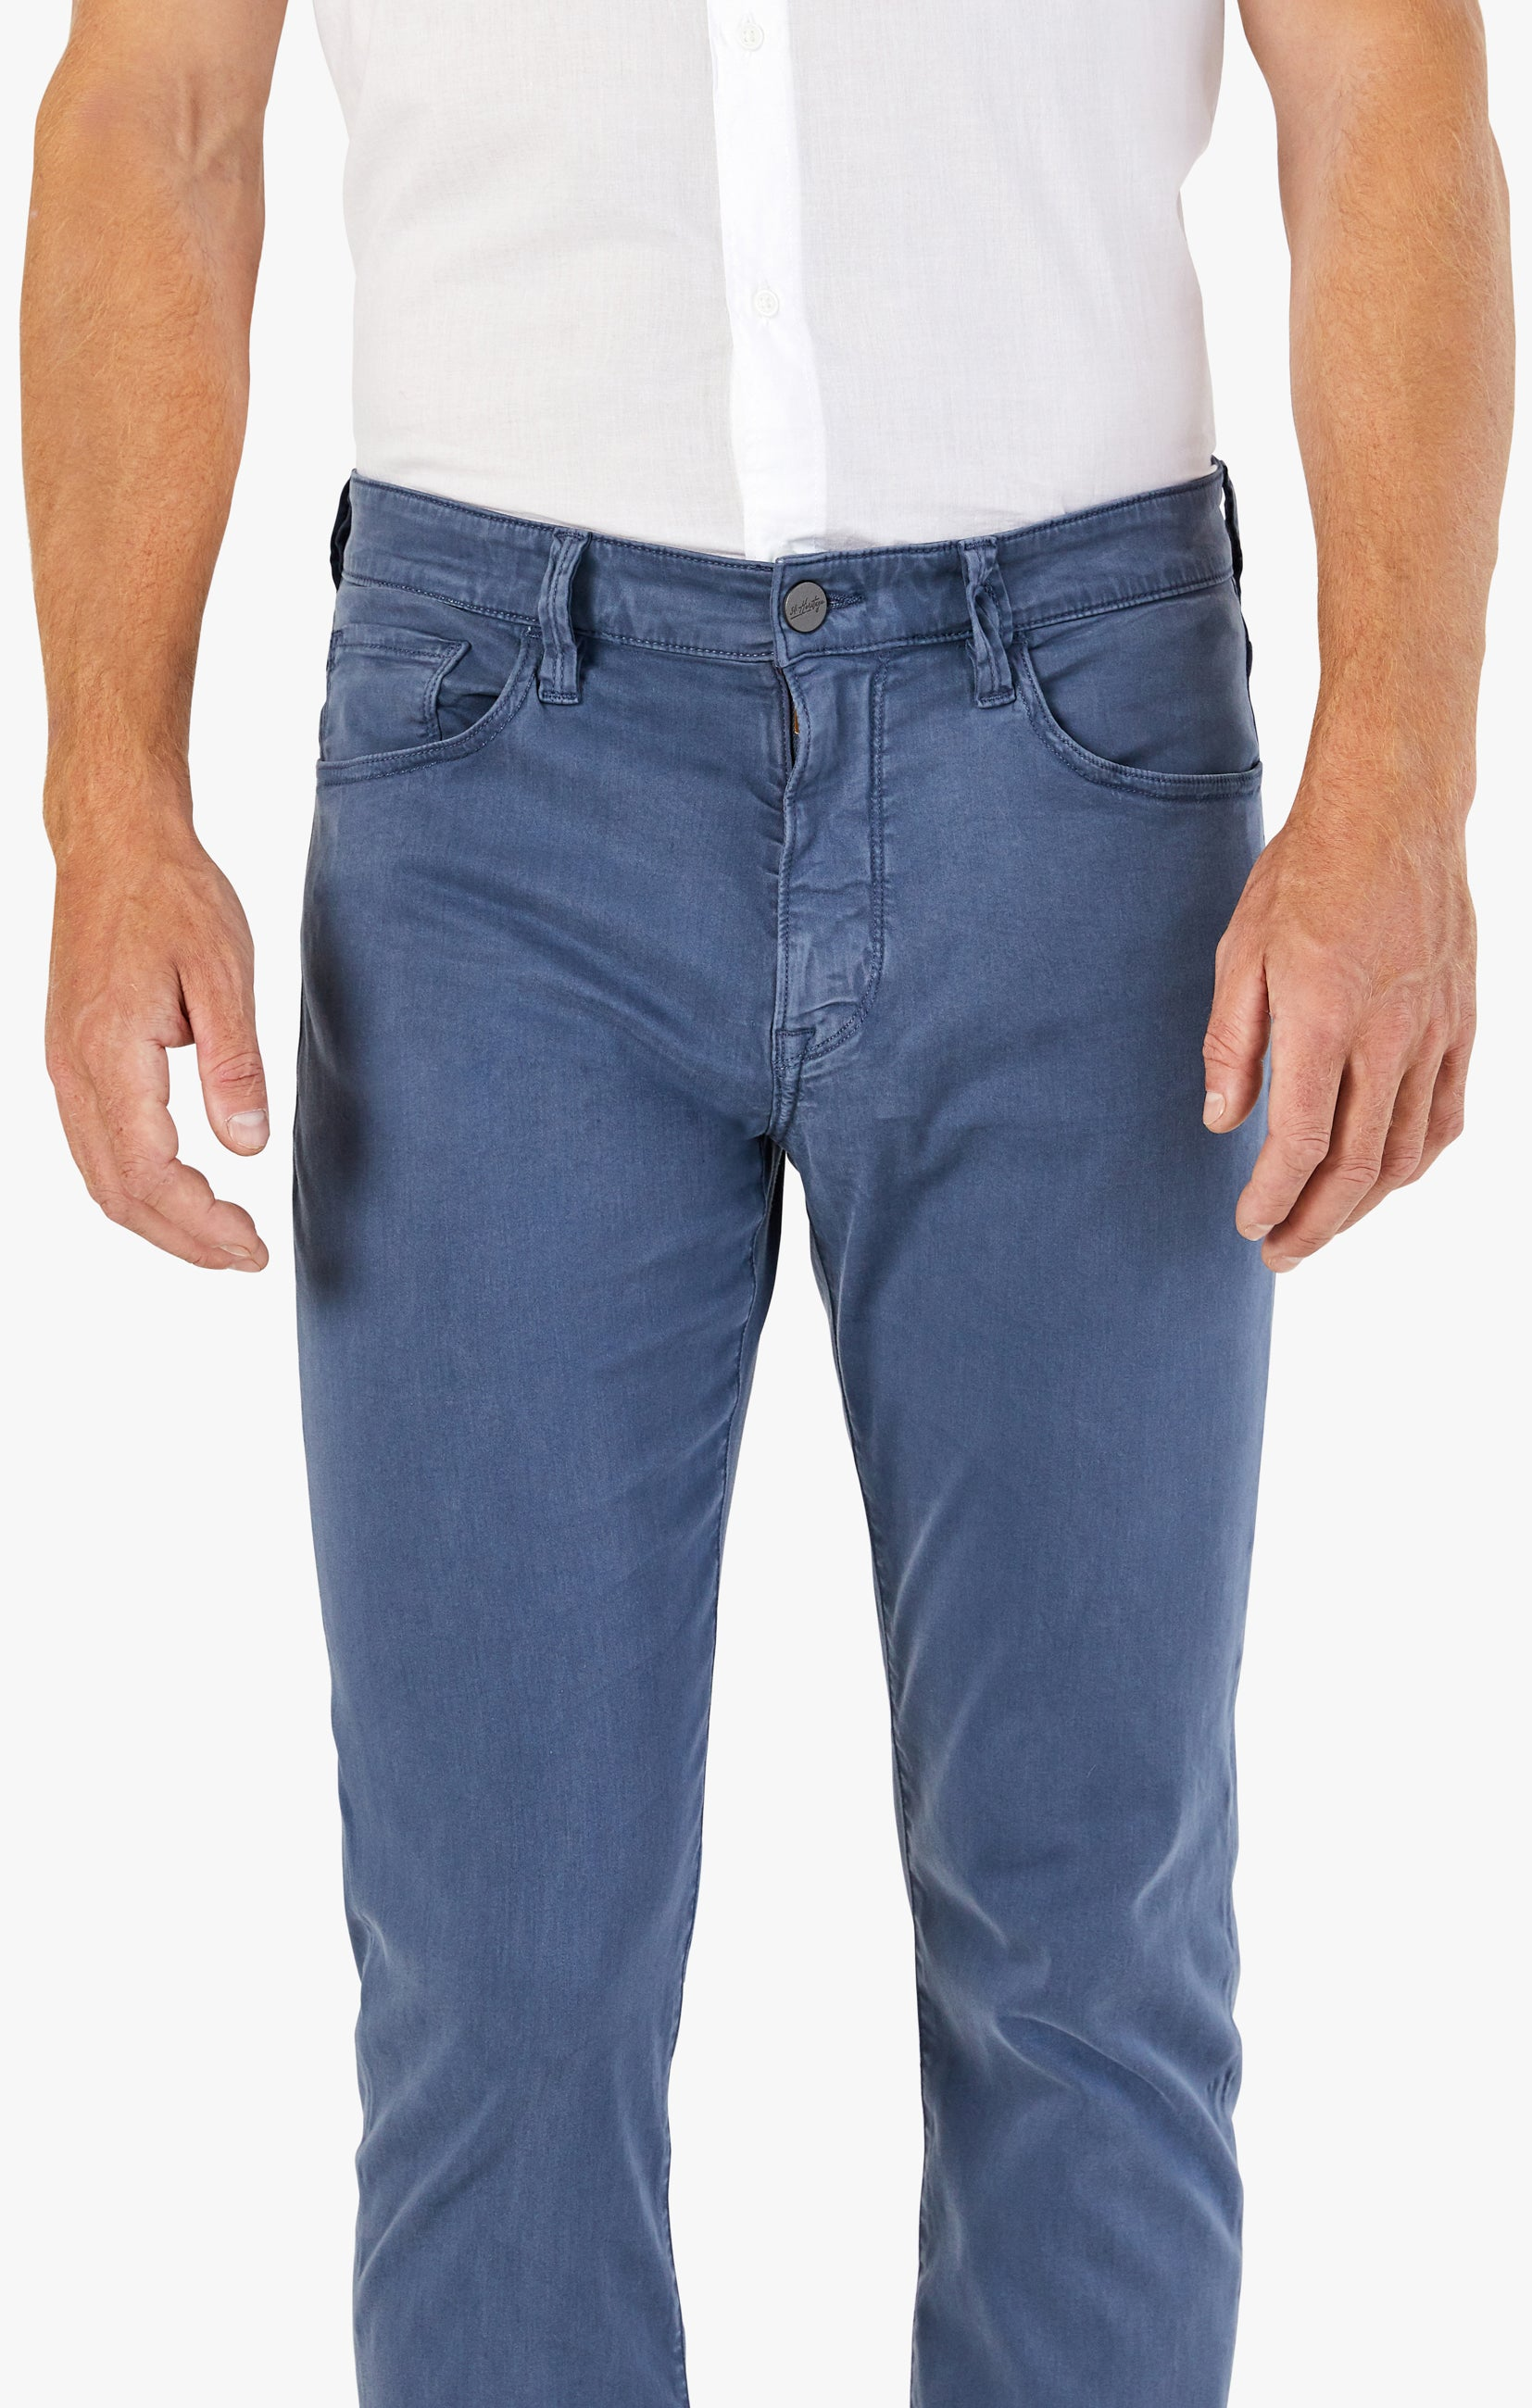 Charisma Relaxed Straight Pants In Vintage Indigo Twill Image 4